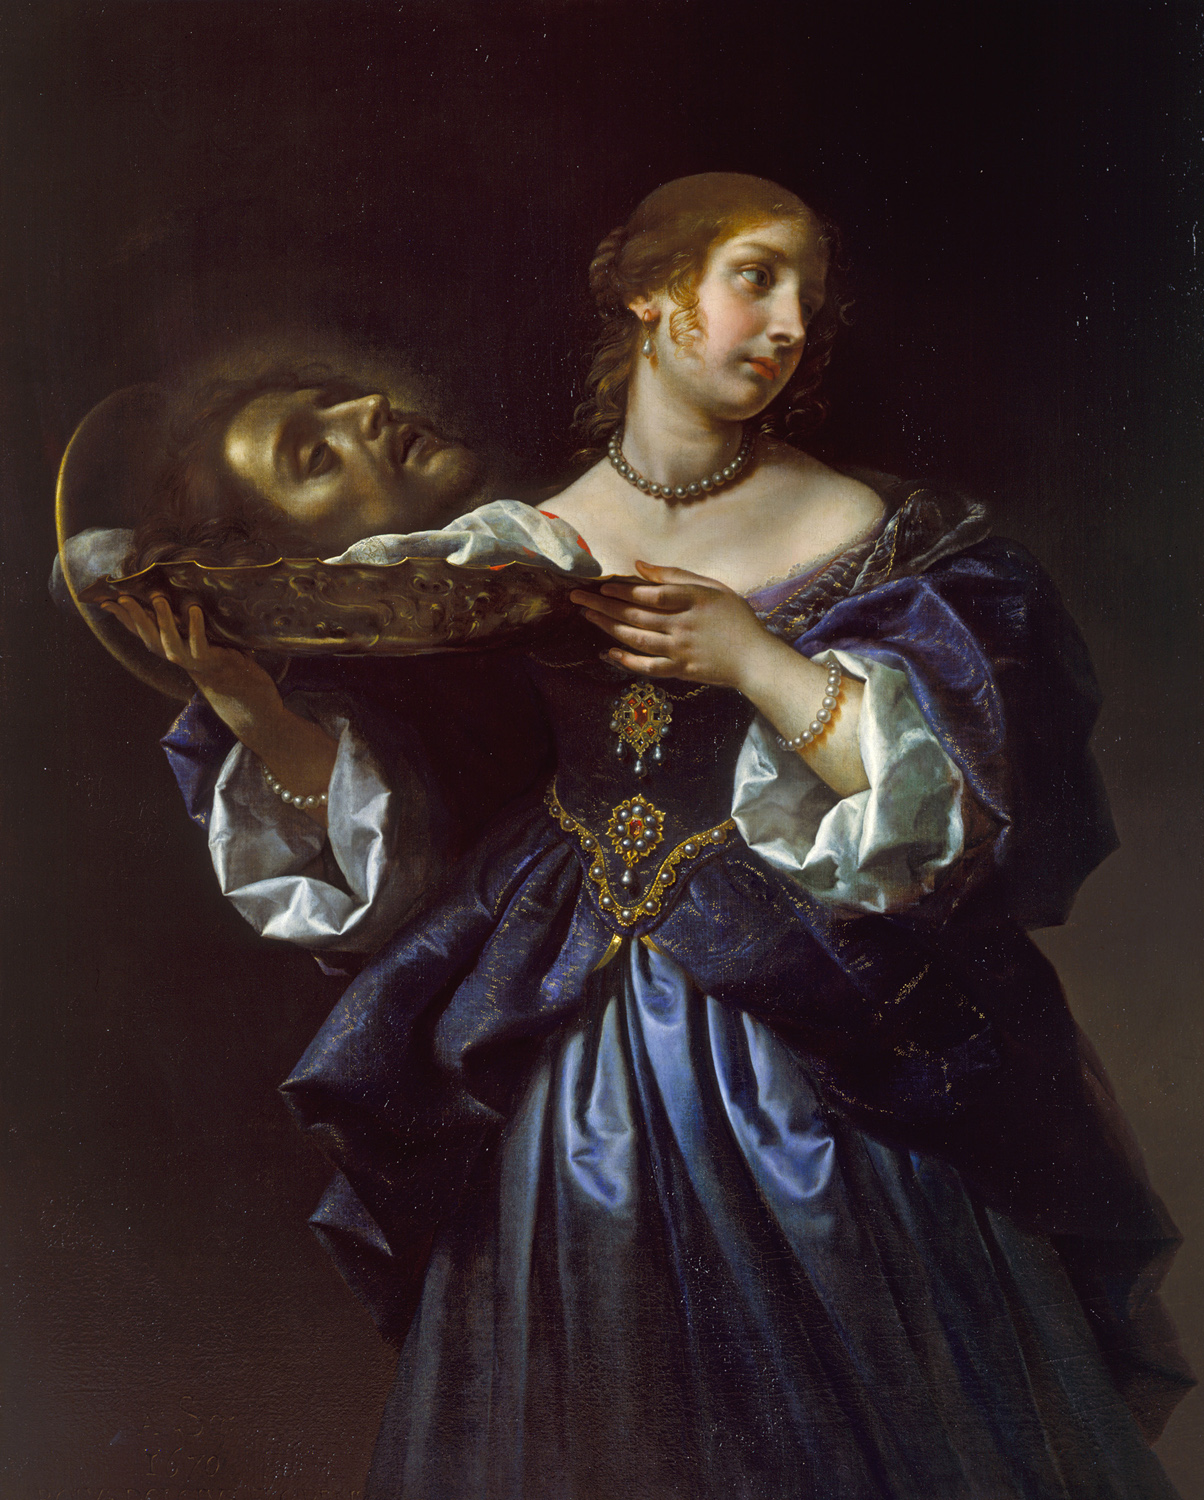 /800/600/https/upload.wikimedia.org/wikipedia/commons/2/2e/Carlo_Dolci_Salome_Head_of_St_John_the_Baptist.jpg